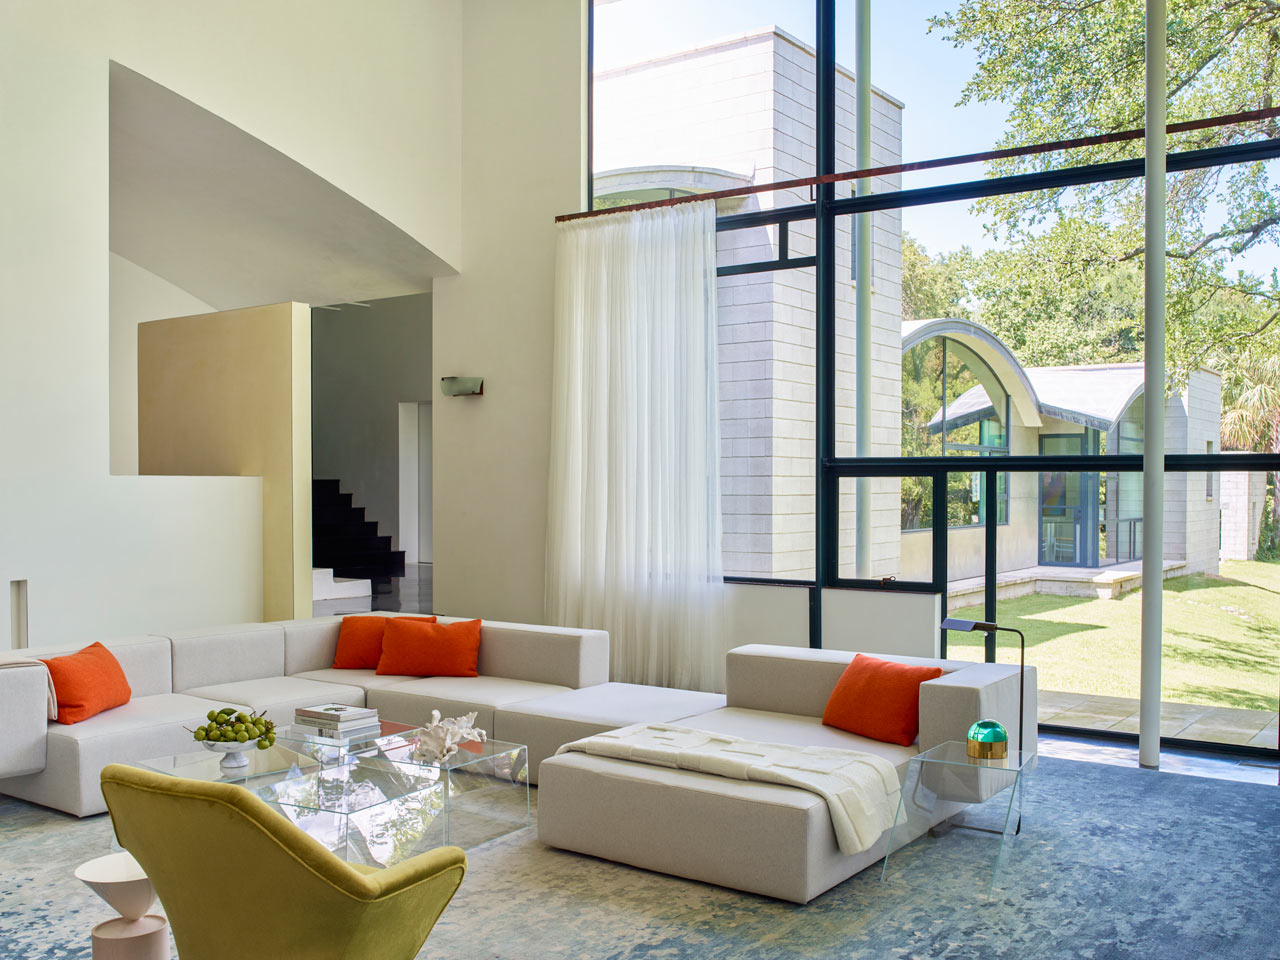 Emily Summers Brings Life to an 90s Home in Dallas